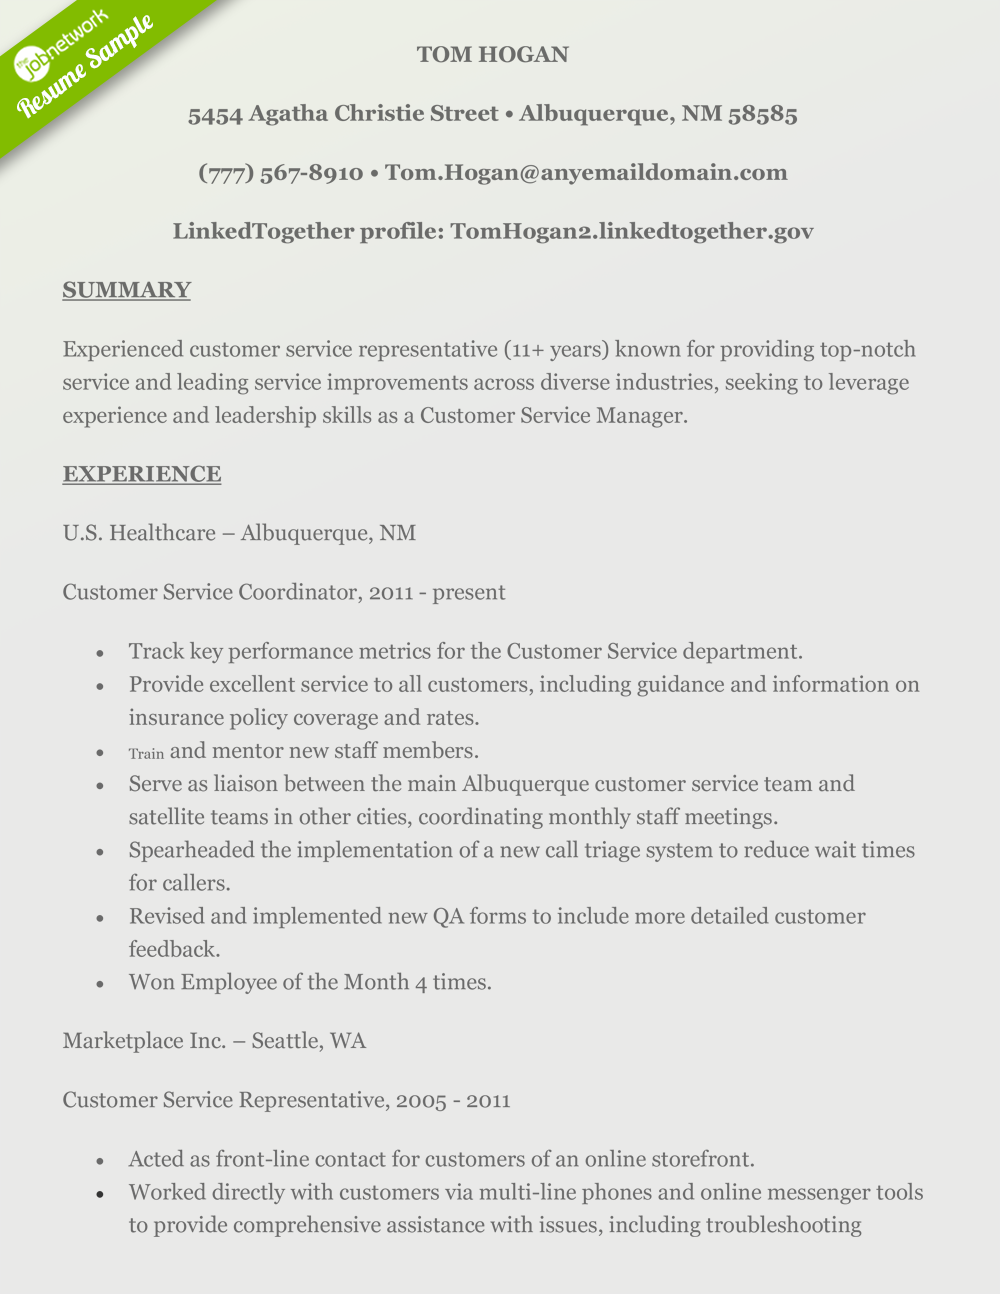 Tom Hogan Resume  Customer Service Summary For Resume